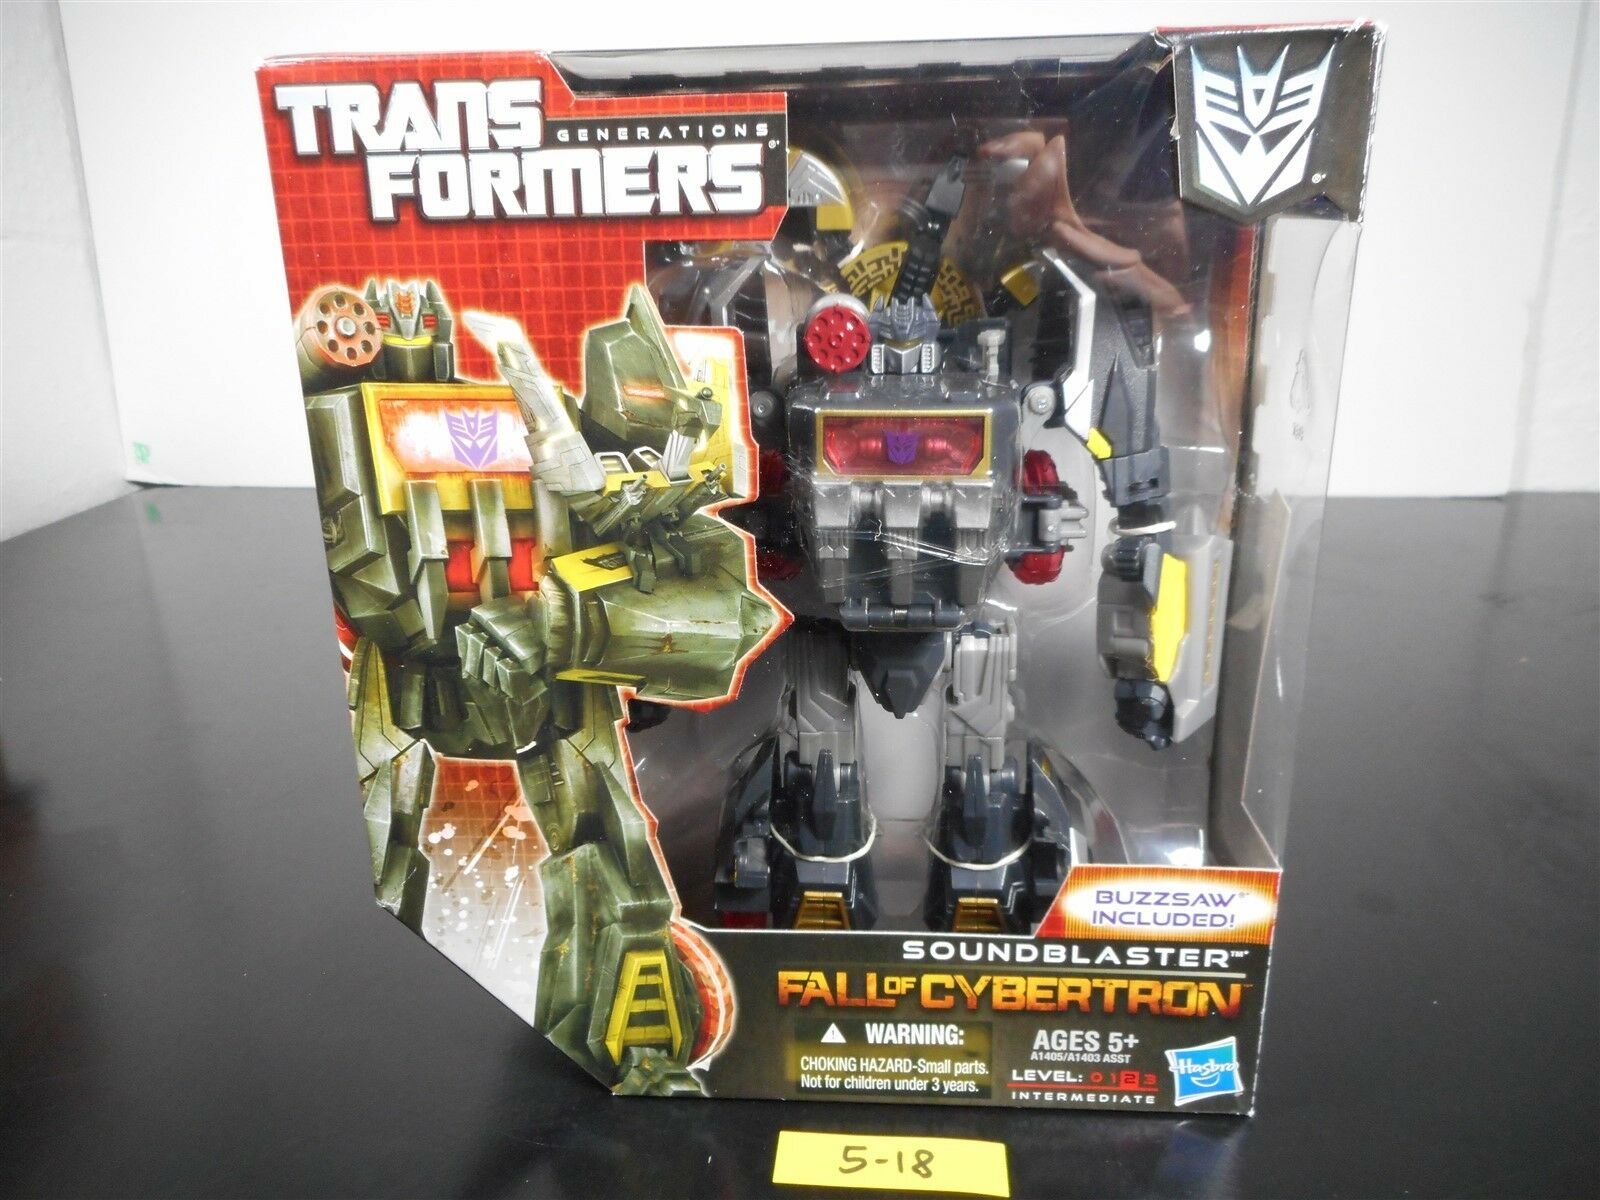 NEW & SEALED    TRANSFORMERS GENERATIONS FALL OF CYBERTRON SOUNDBLASTER FOC 5-18